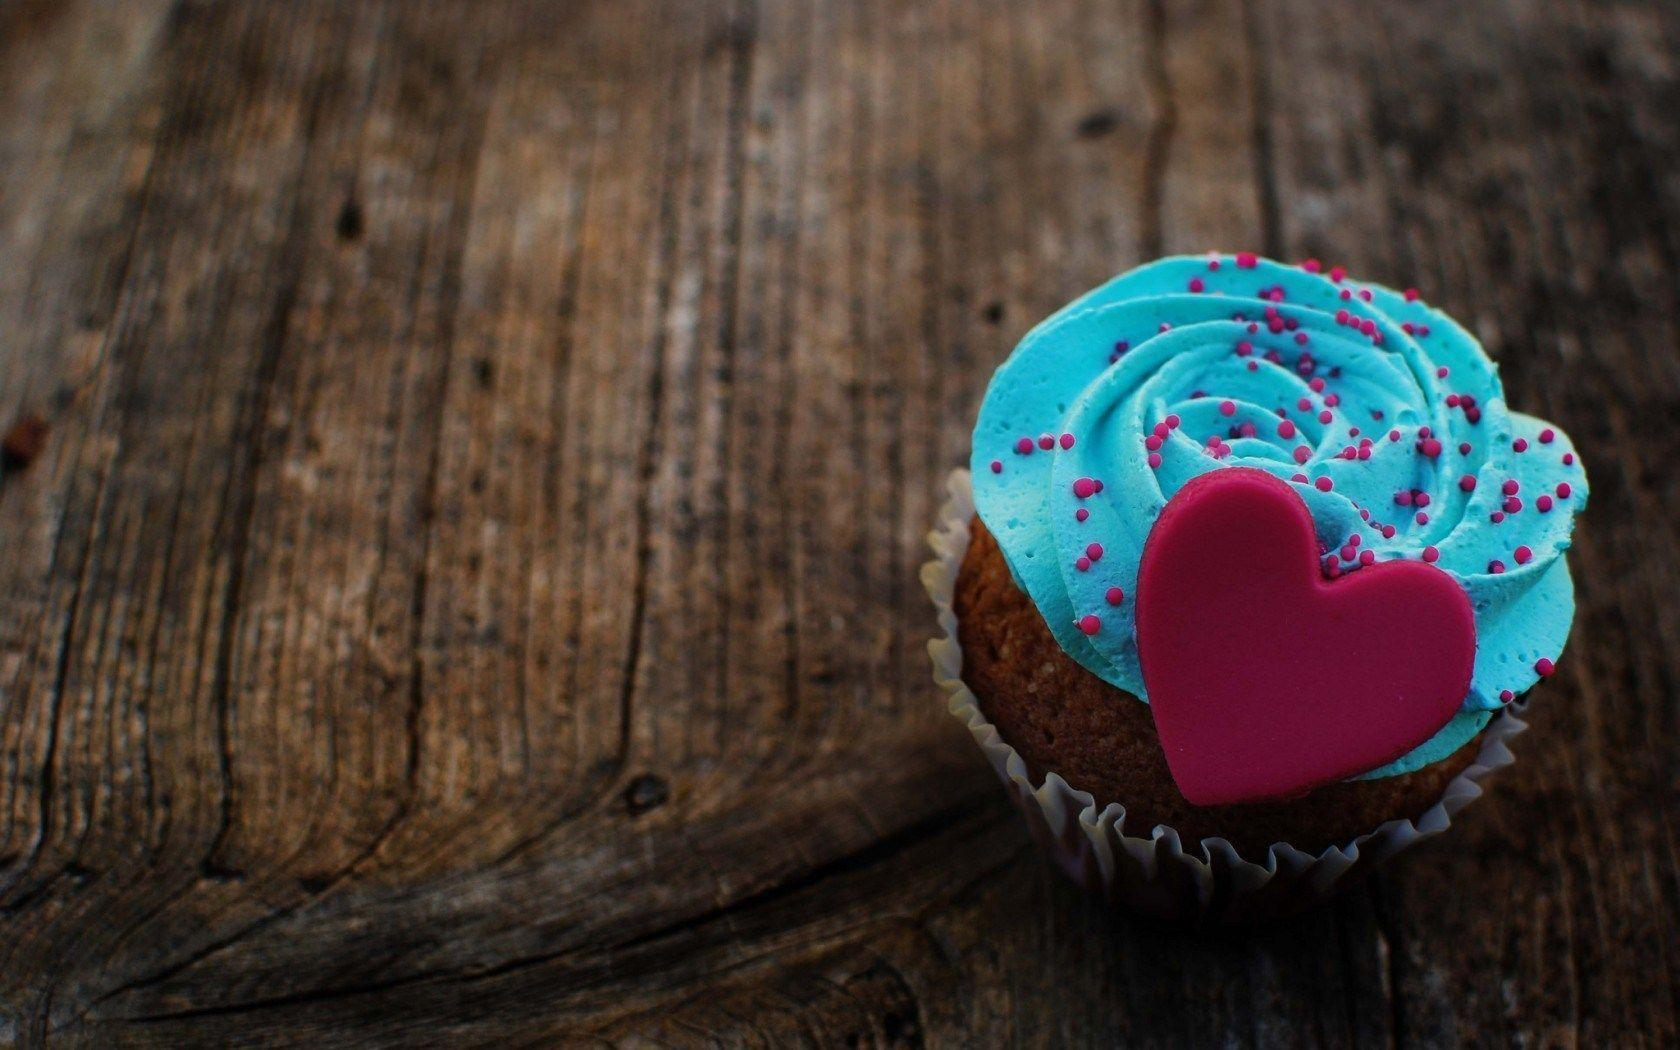 Marzipan Heart Cream Blue Dessert Cake Love HD Wallpaper - ZoomWalls